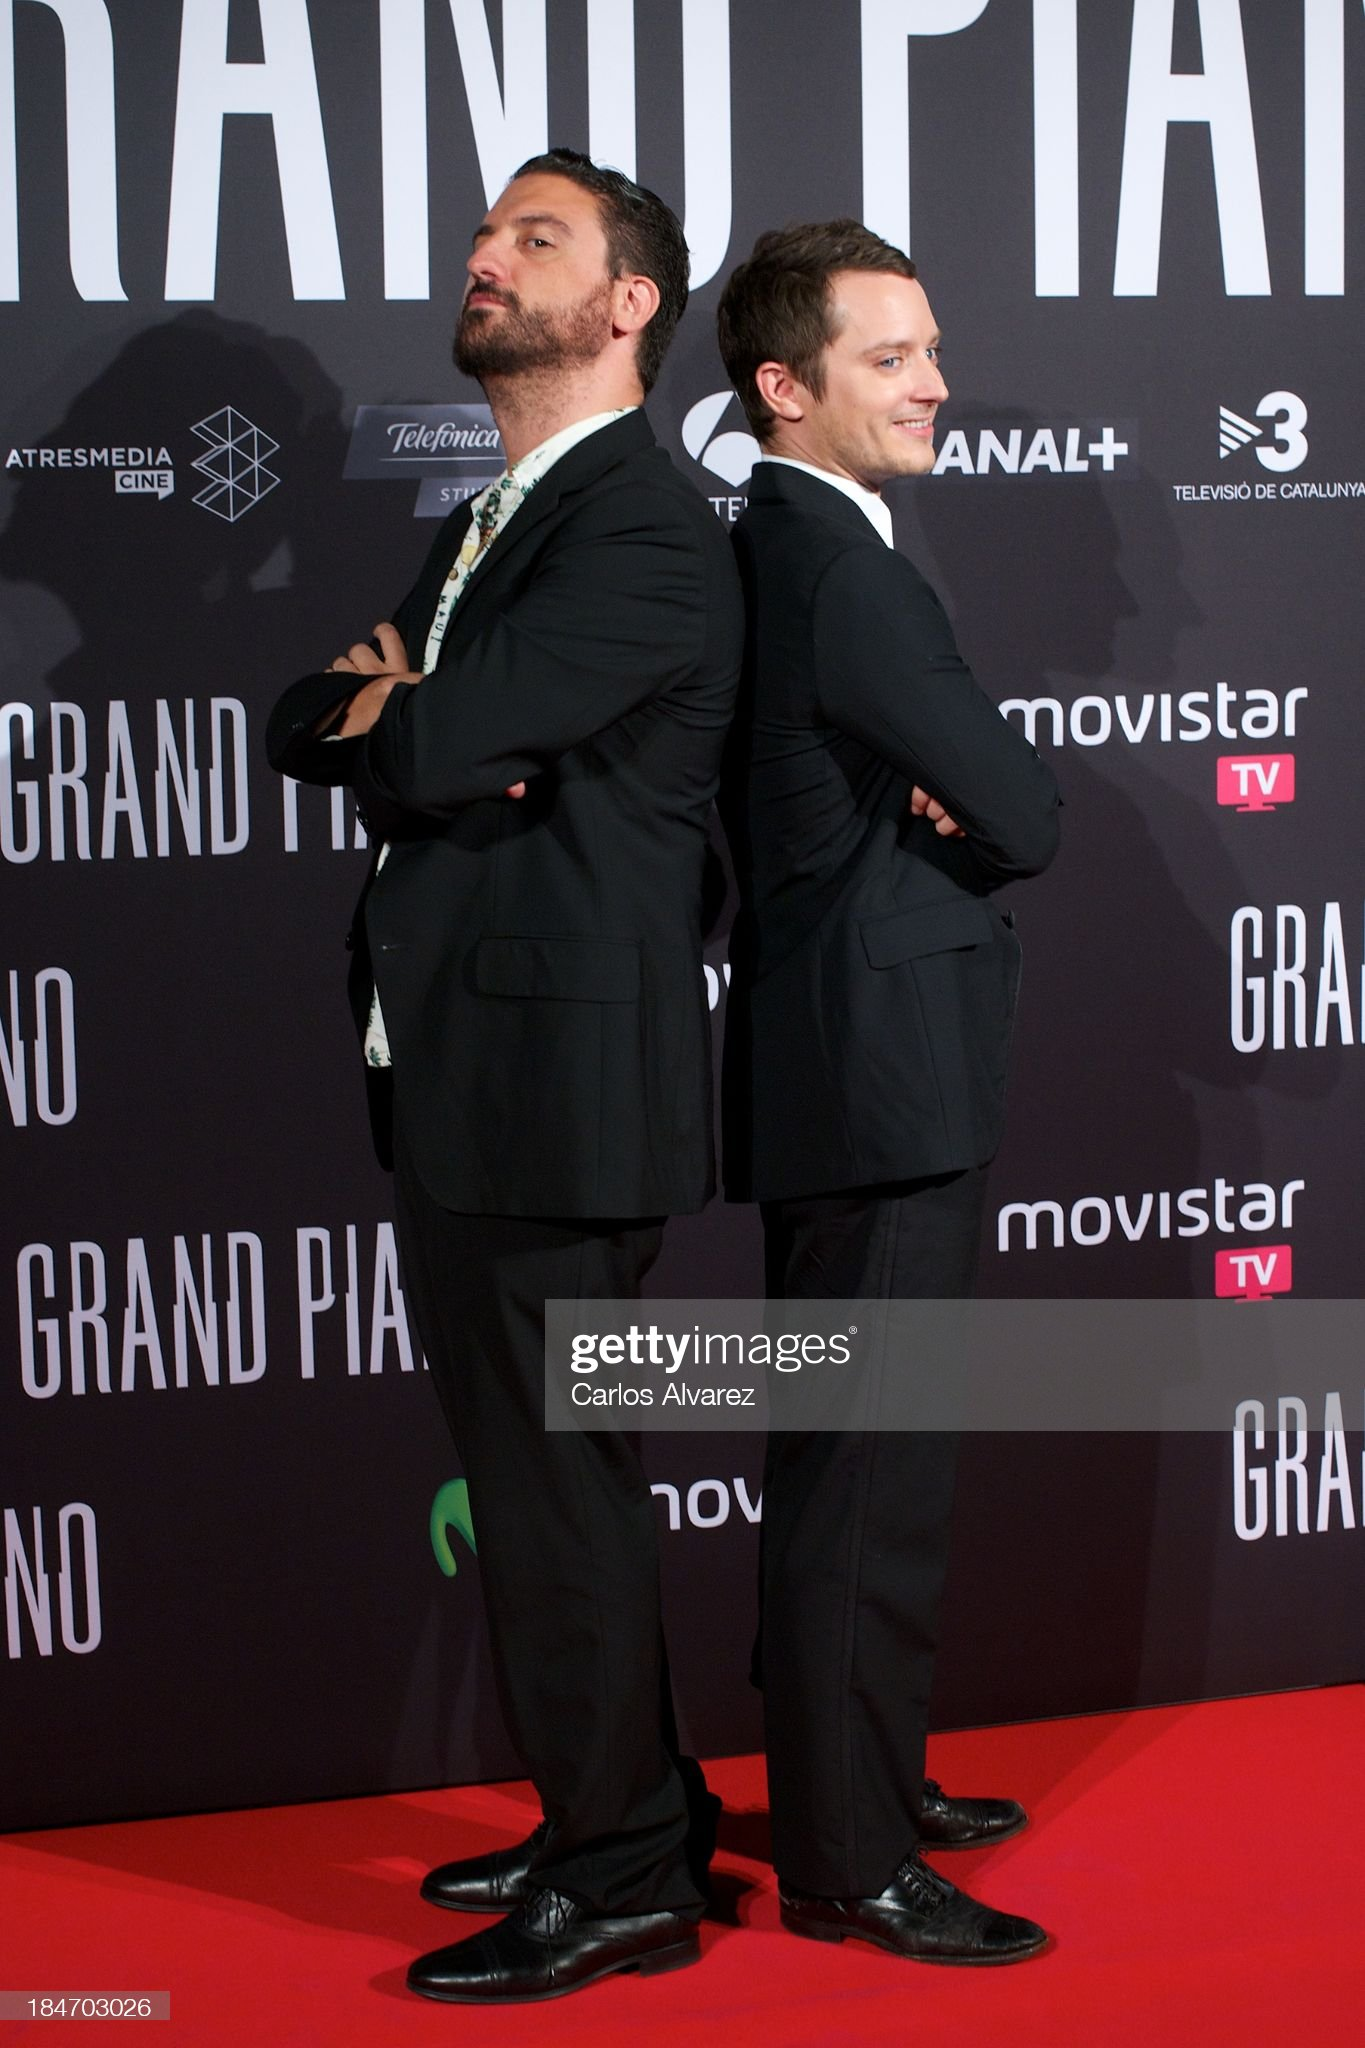 ¿Cuánto mide Eugenio Mira? - Altura Spanish-director-eugenio-mira-and-actor-elijah-wood-attend-grand-at-picture-id184703026?s=2048x2048